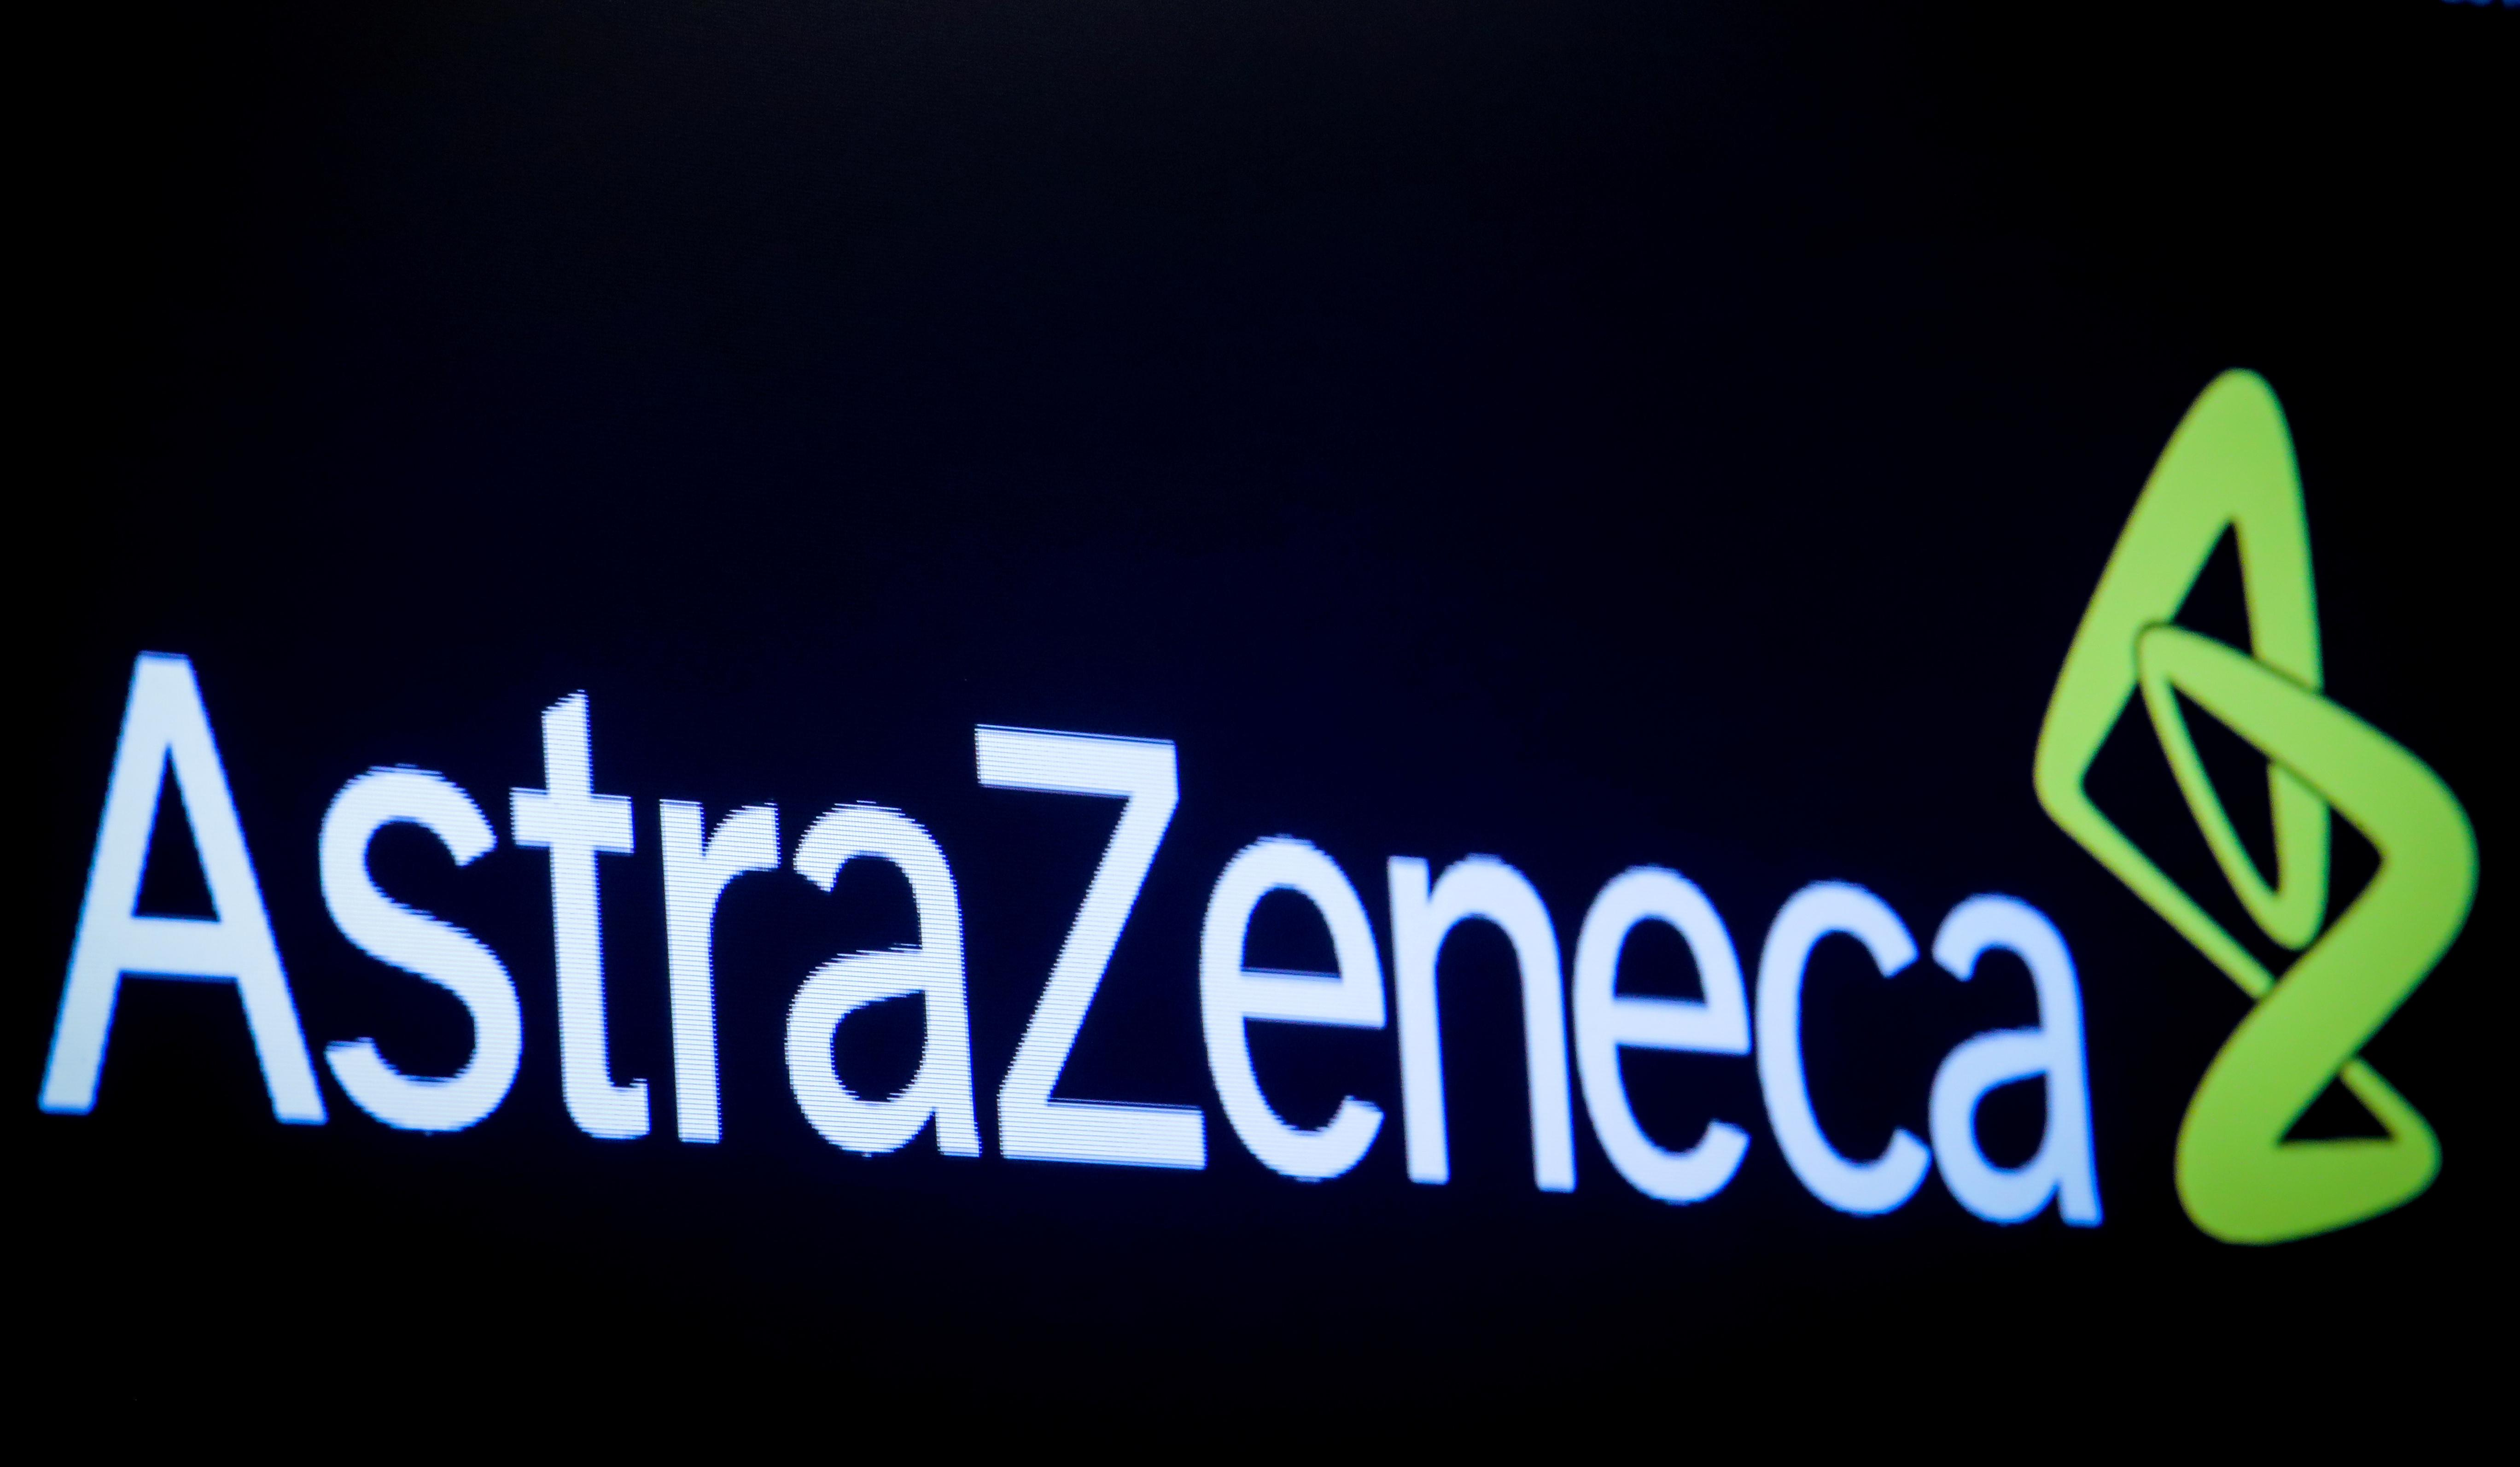 AstraZeneca shares rise on early U.S. approval for leukemia drug